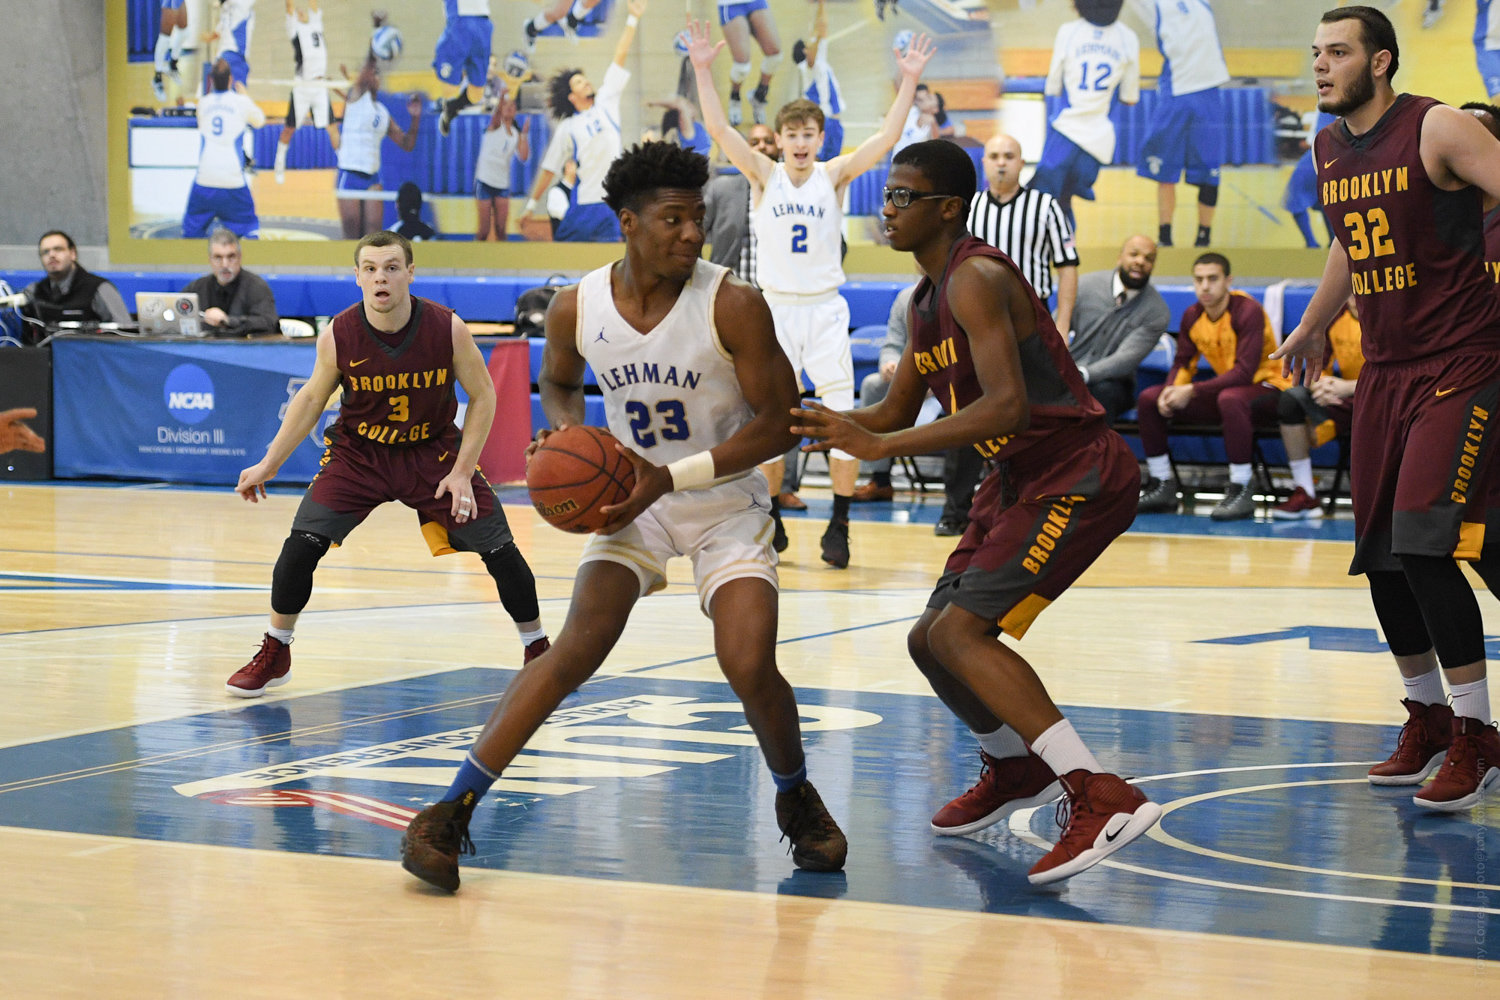 Lehman College junior Isaiah Geathers scored six of his 15 points in overtime in the Lightning's three-point win over Keystone College last week.